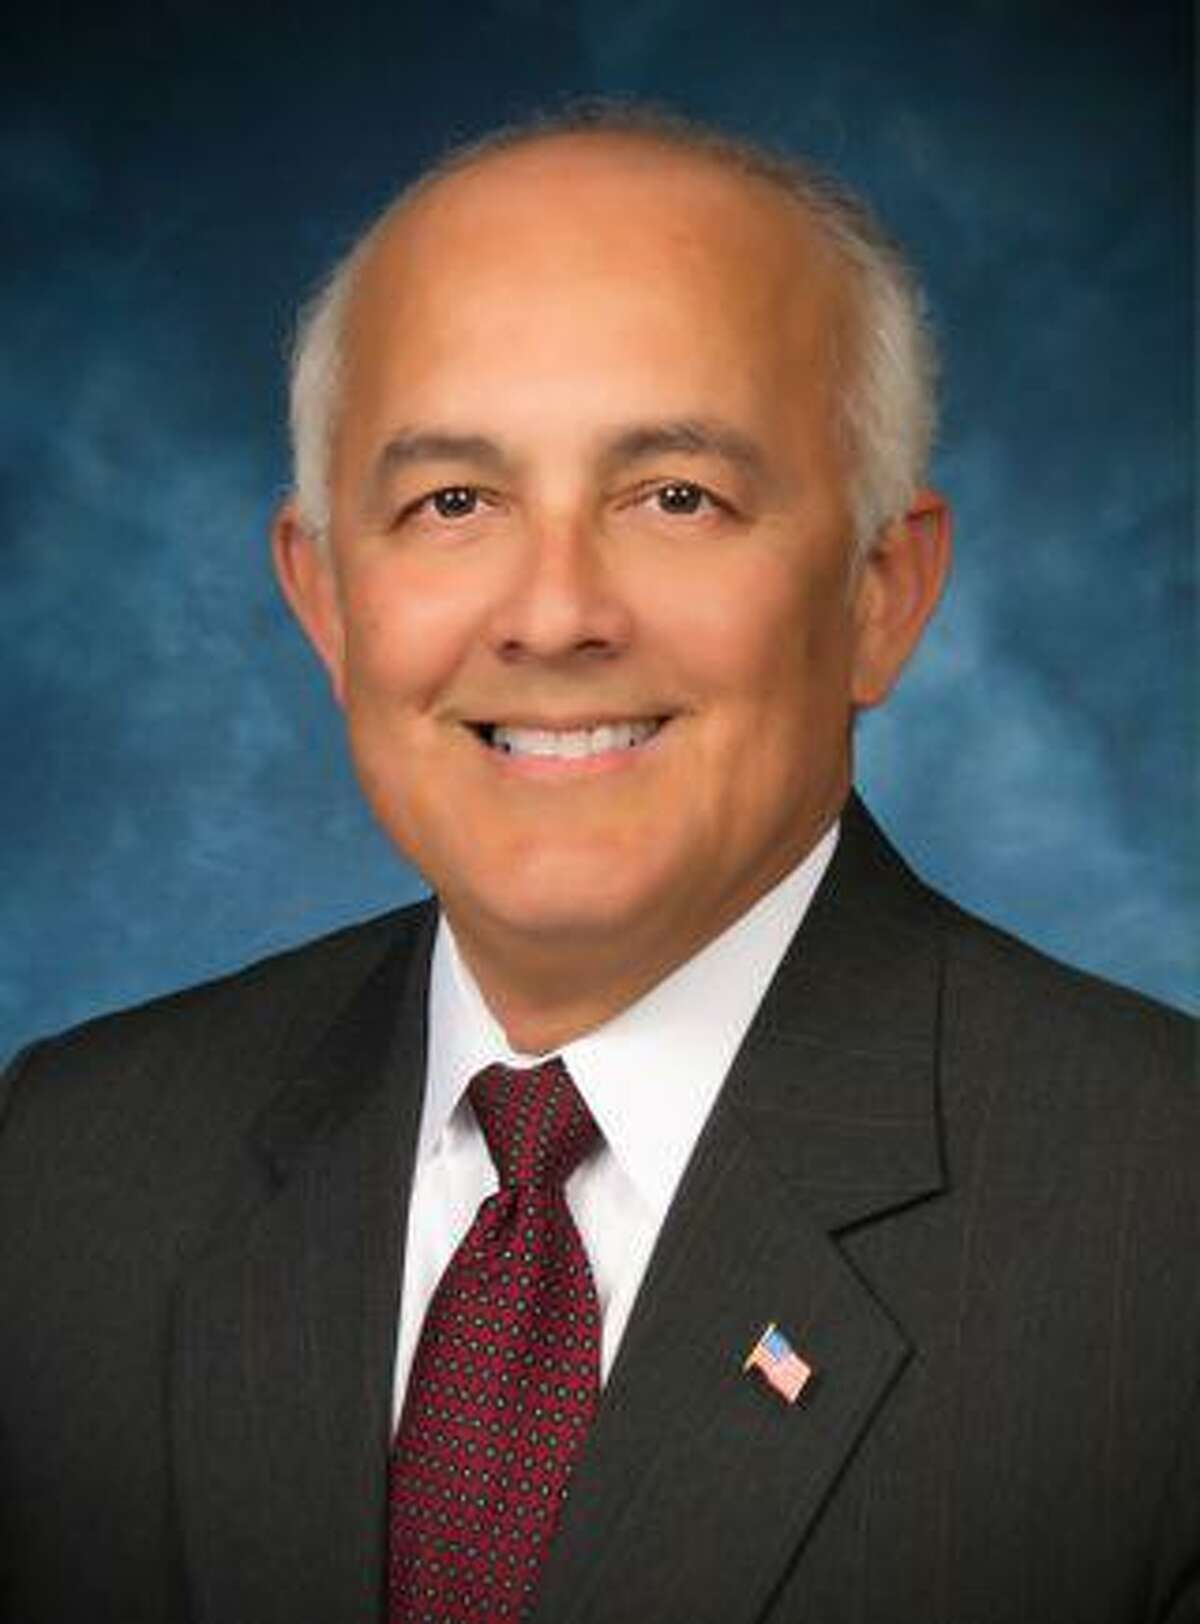 Long-time federal and state law enforcement official John Escoto was victorious in his bid for a seat on the Shenandoh city council in the May 1 municipal elections. Escoto has lived in Shenandoah 10 years and was formerly a member of the city's planning and zoning commission.